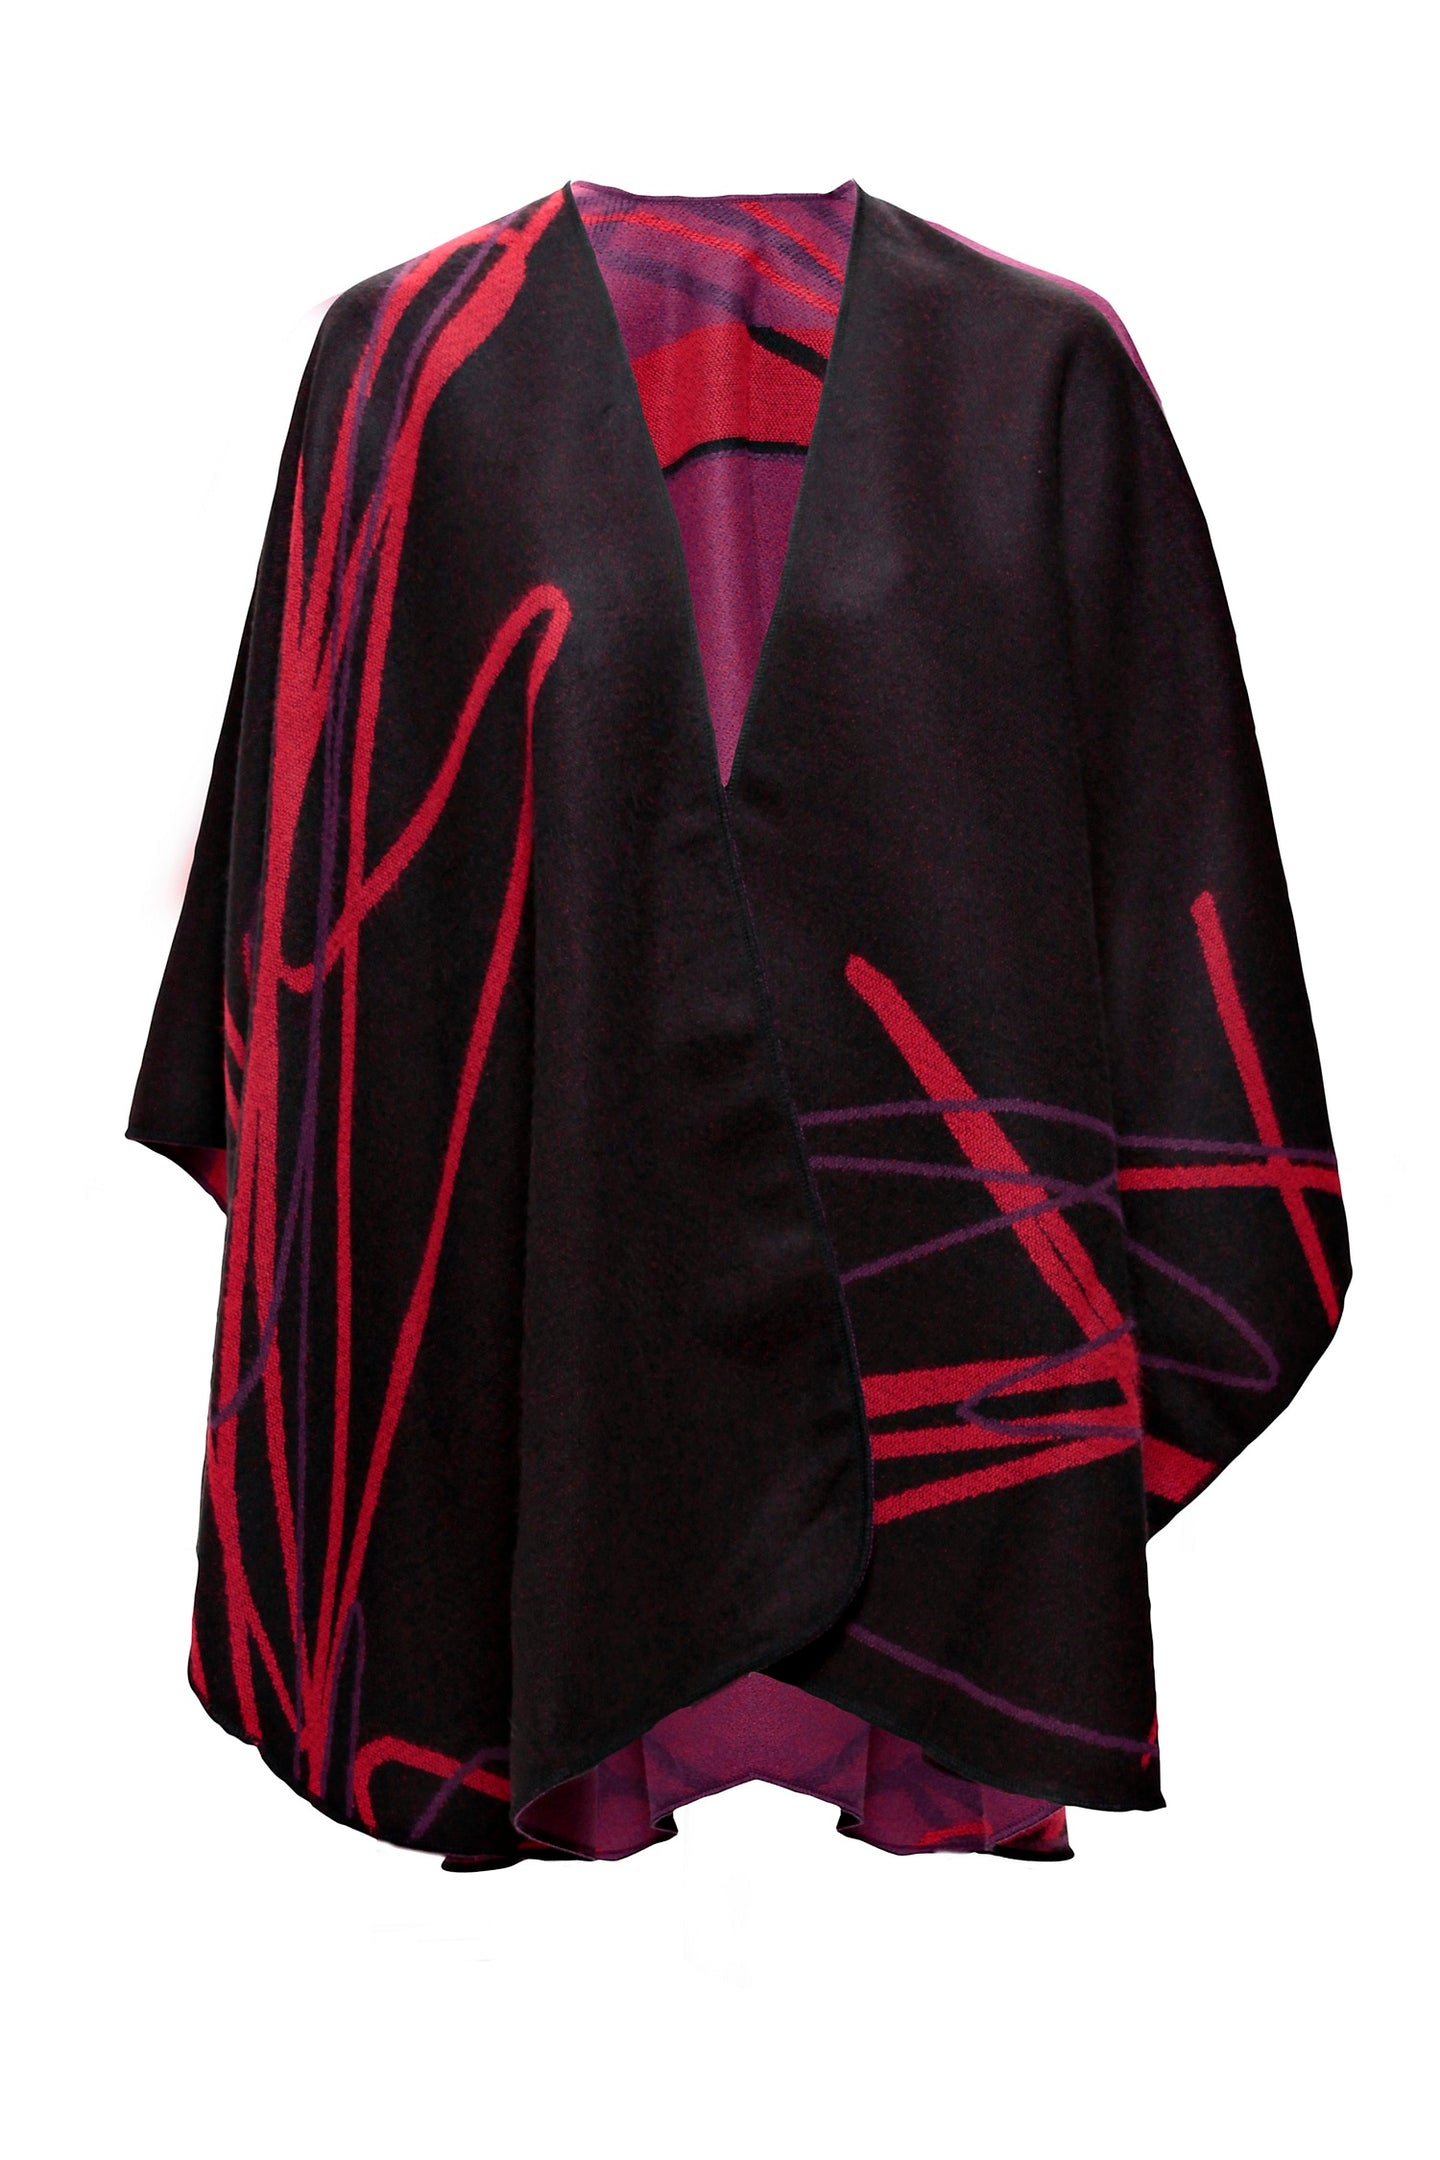 Shawl in Black/Red with Abstract Design